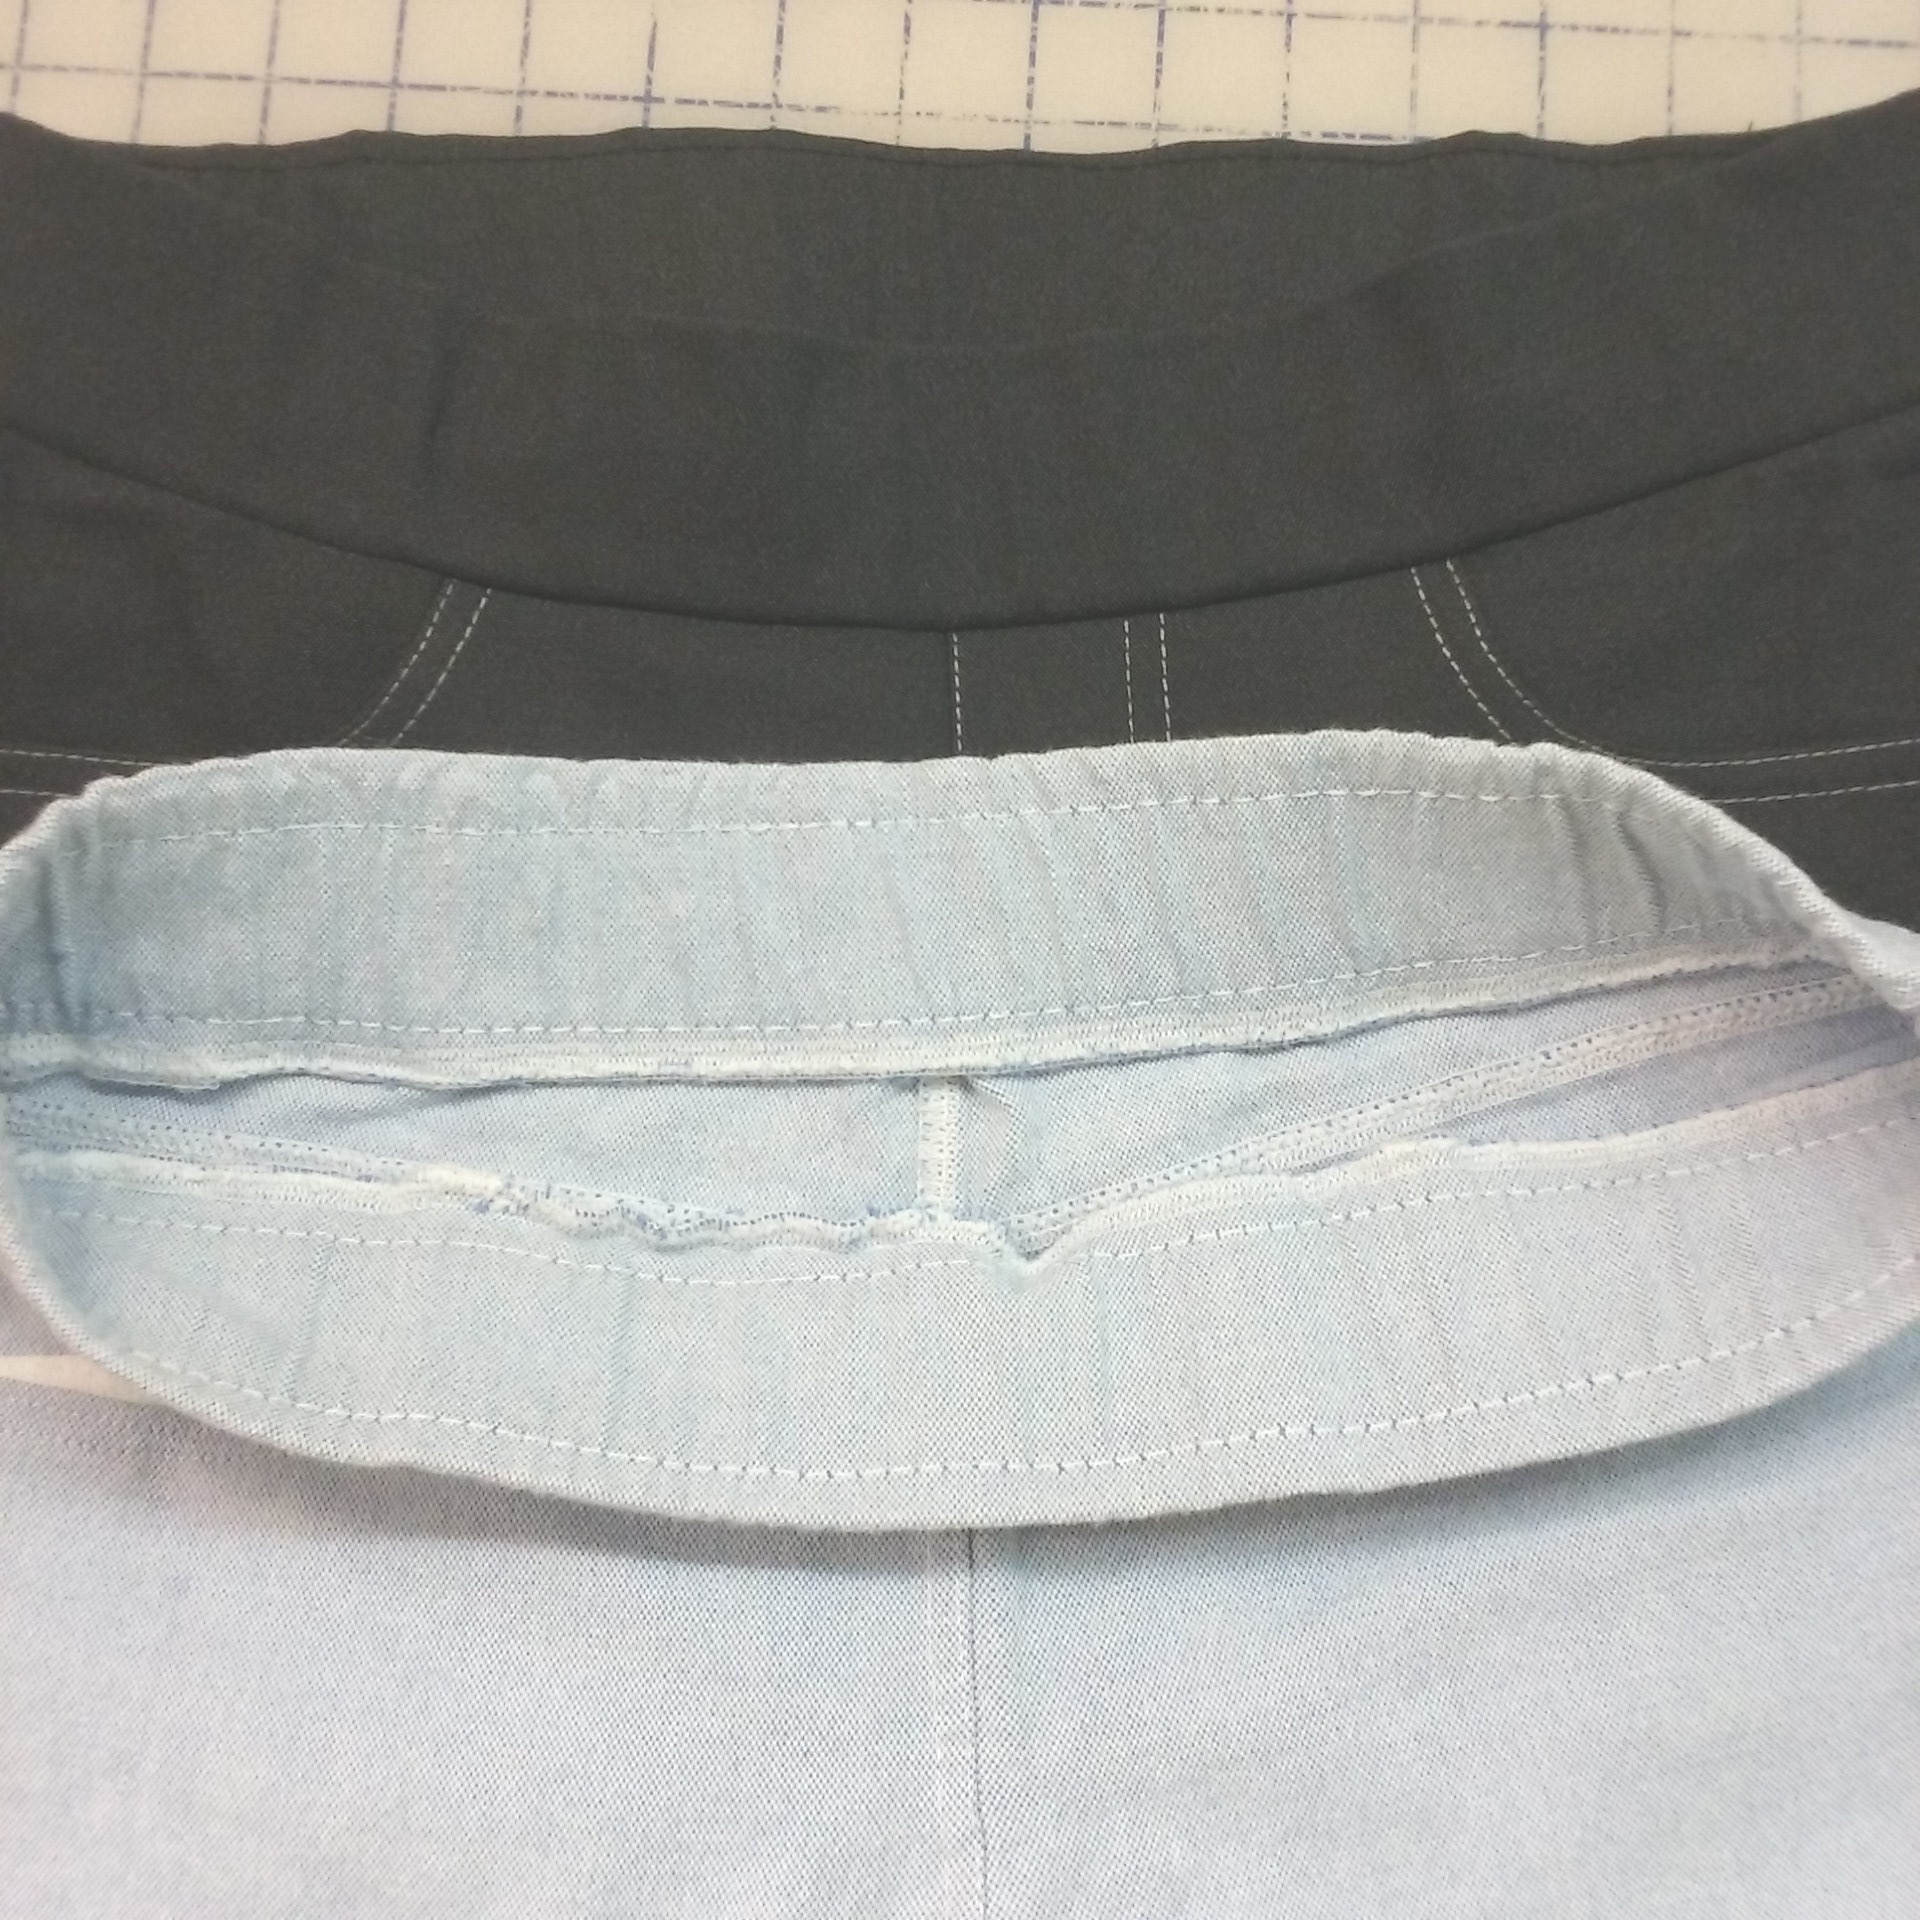 "Same construction method for the waistband, using 2"" wide knit elastic instead of 1""' wide regular elastic"